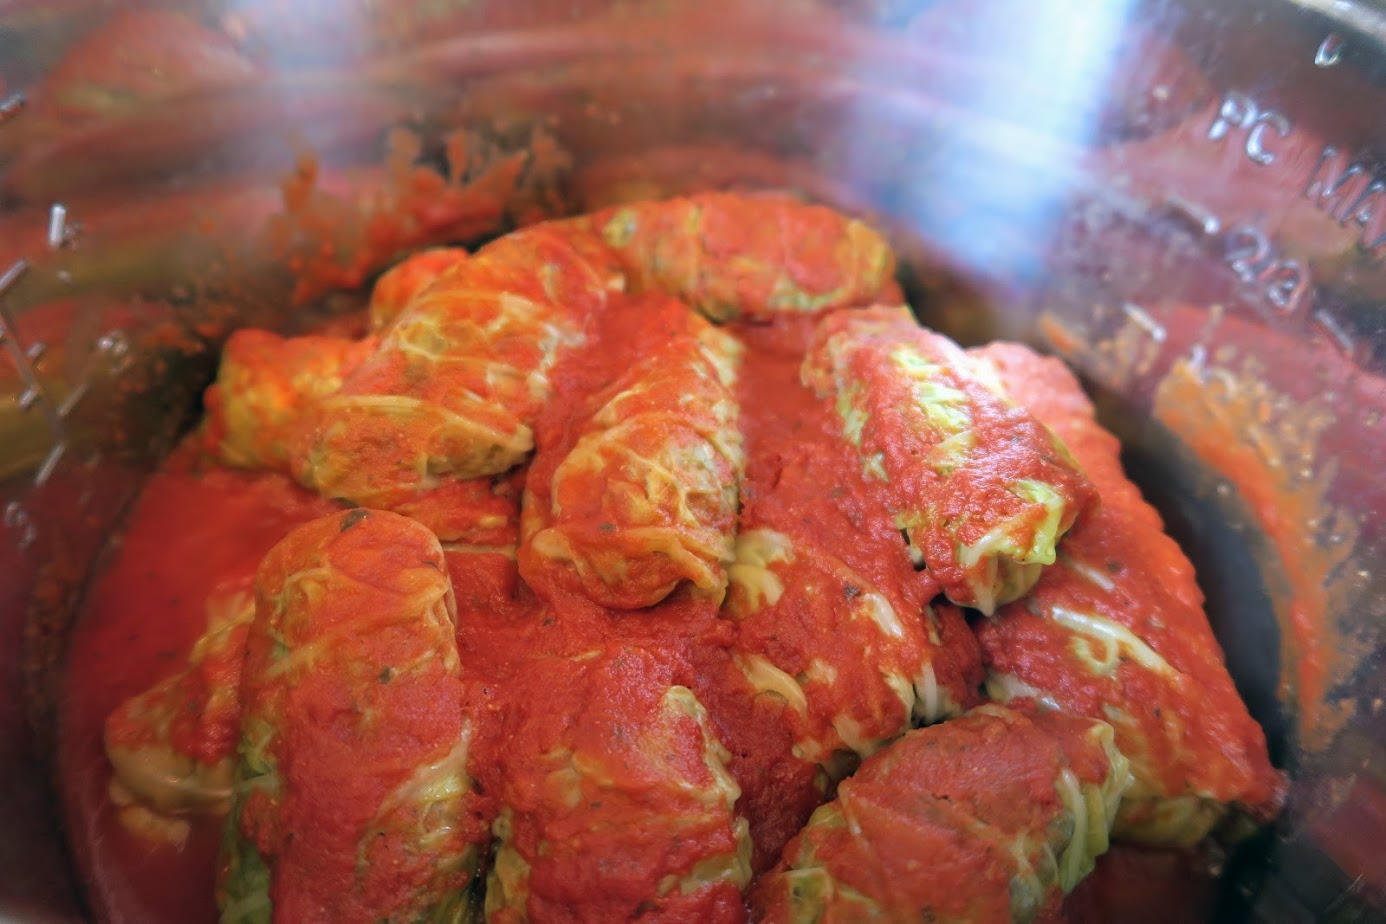 Cooked cabbage rolls inside the Instant Pot covered in tomato sauce